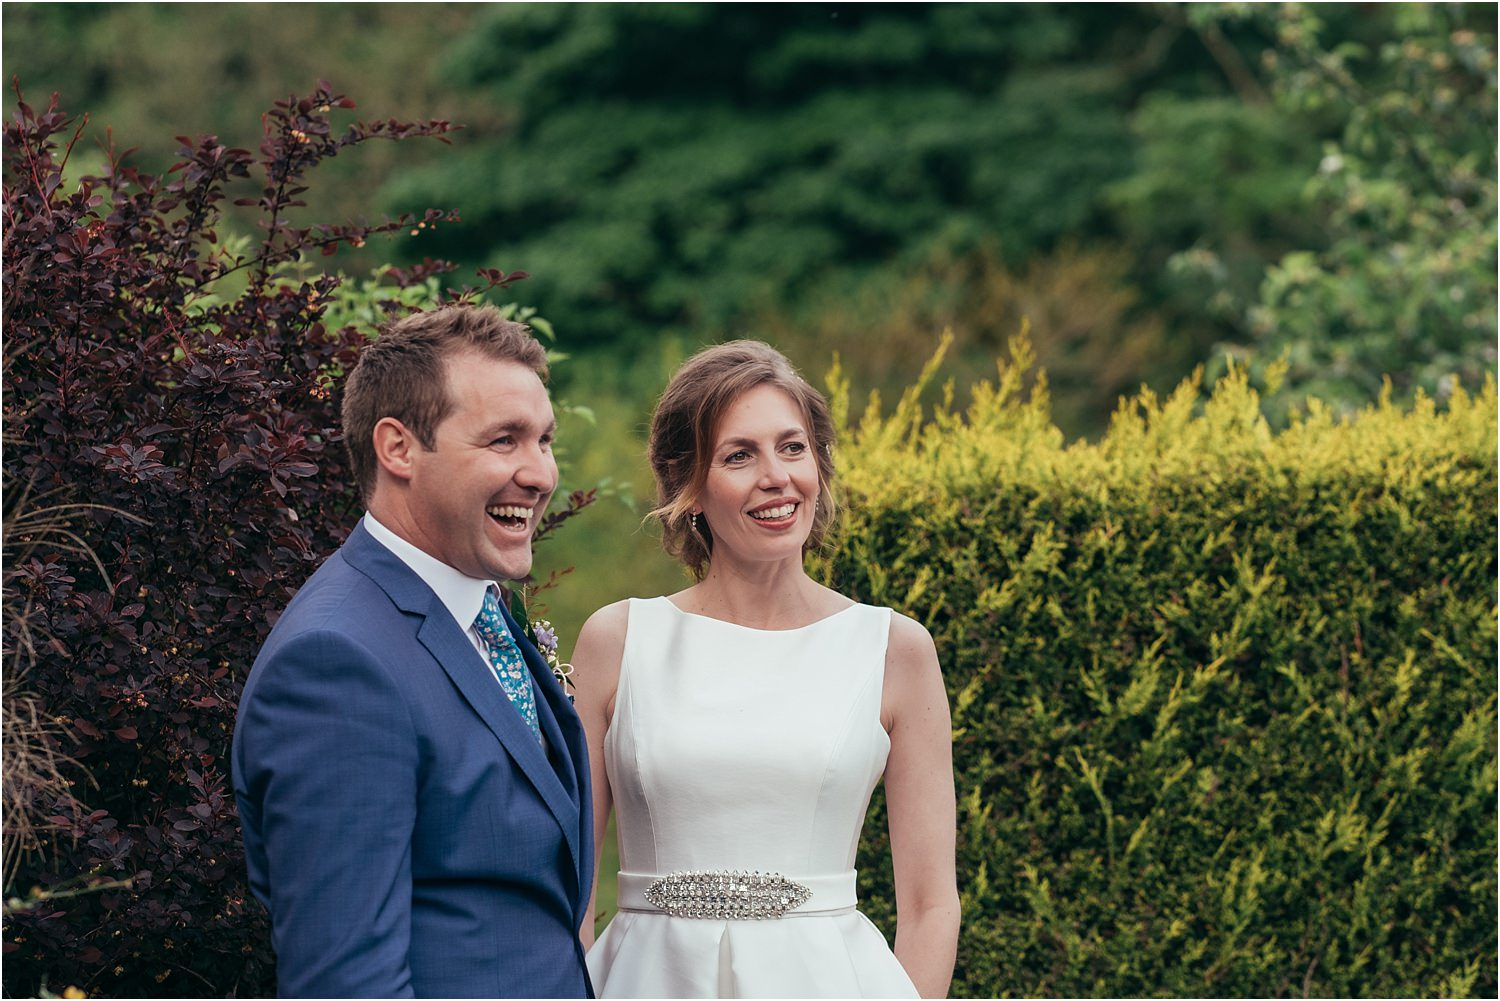 Bride and groom relax together afer their Lancashire wedding